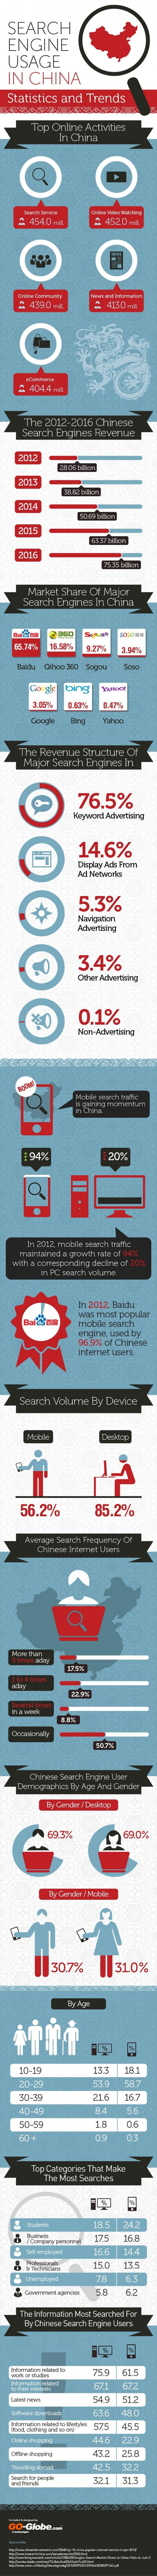 6. Search engine usage in China